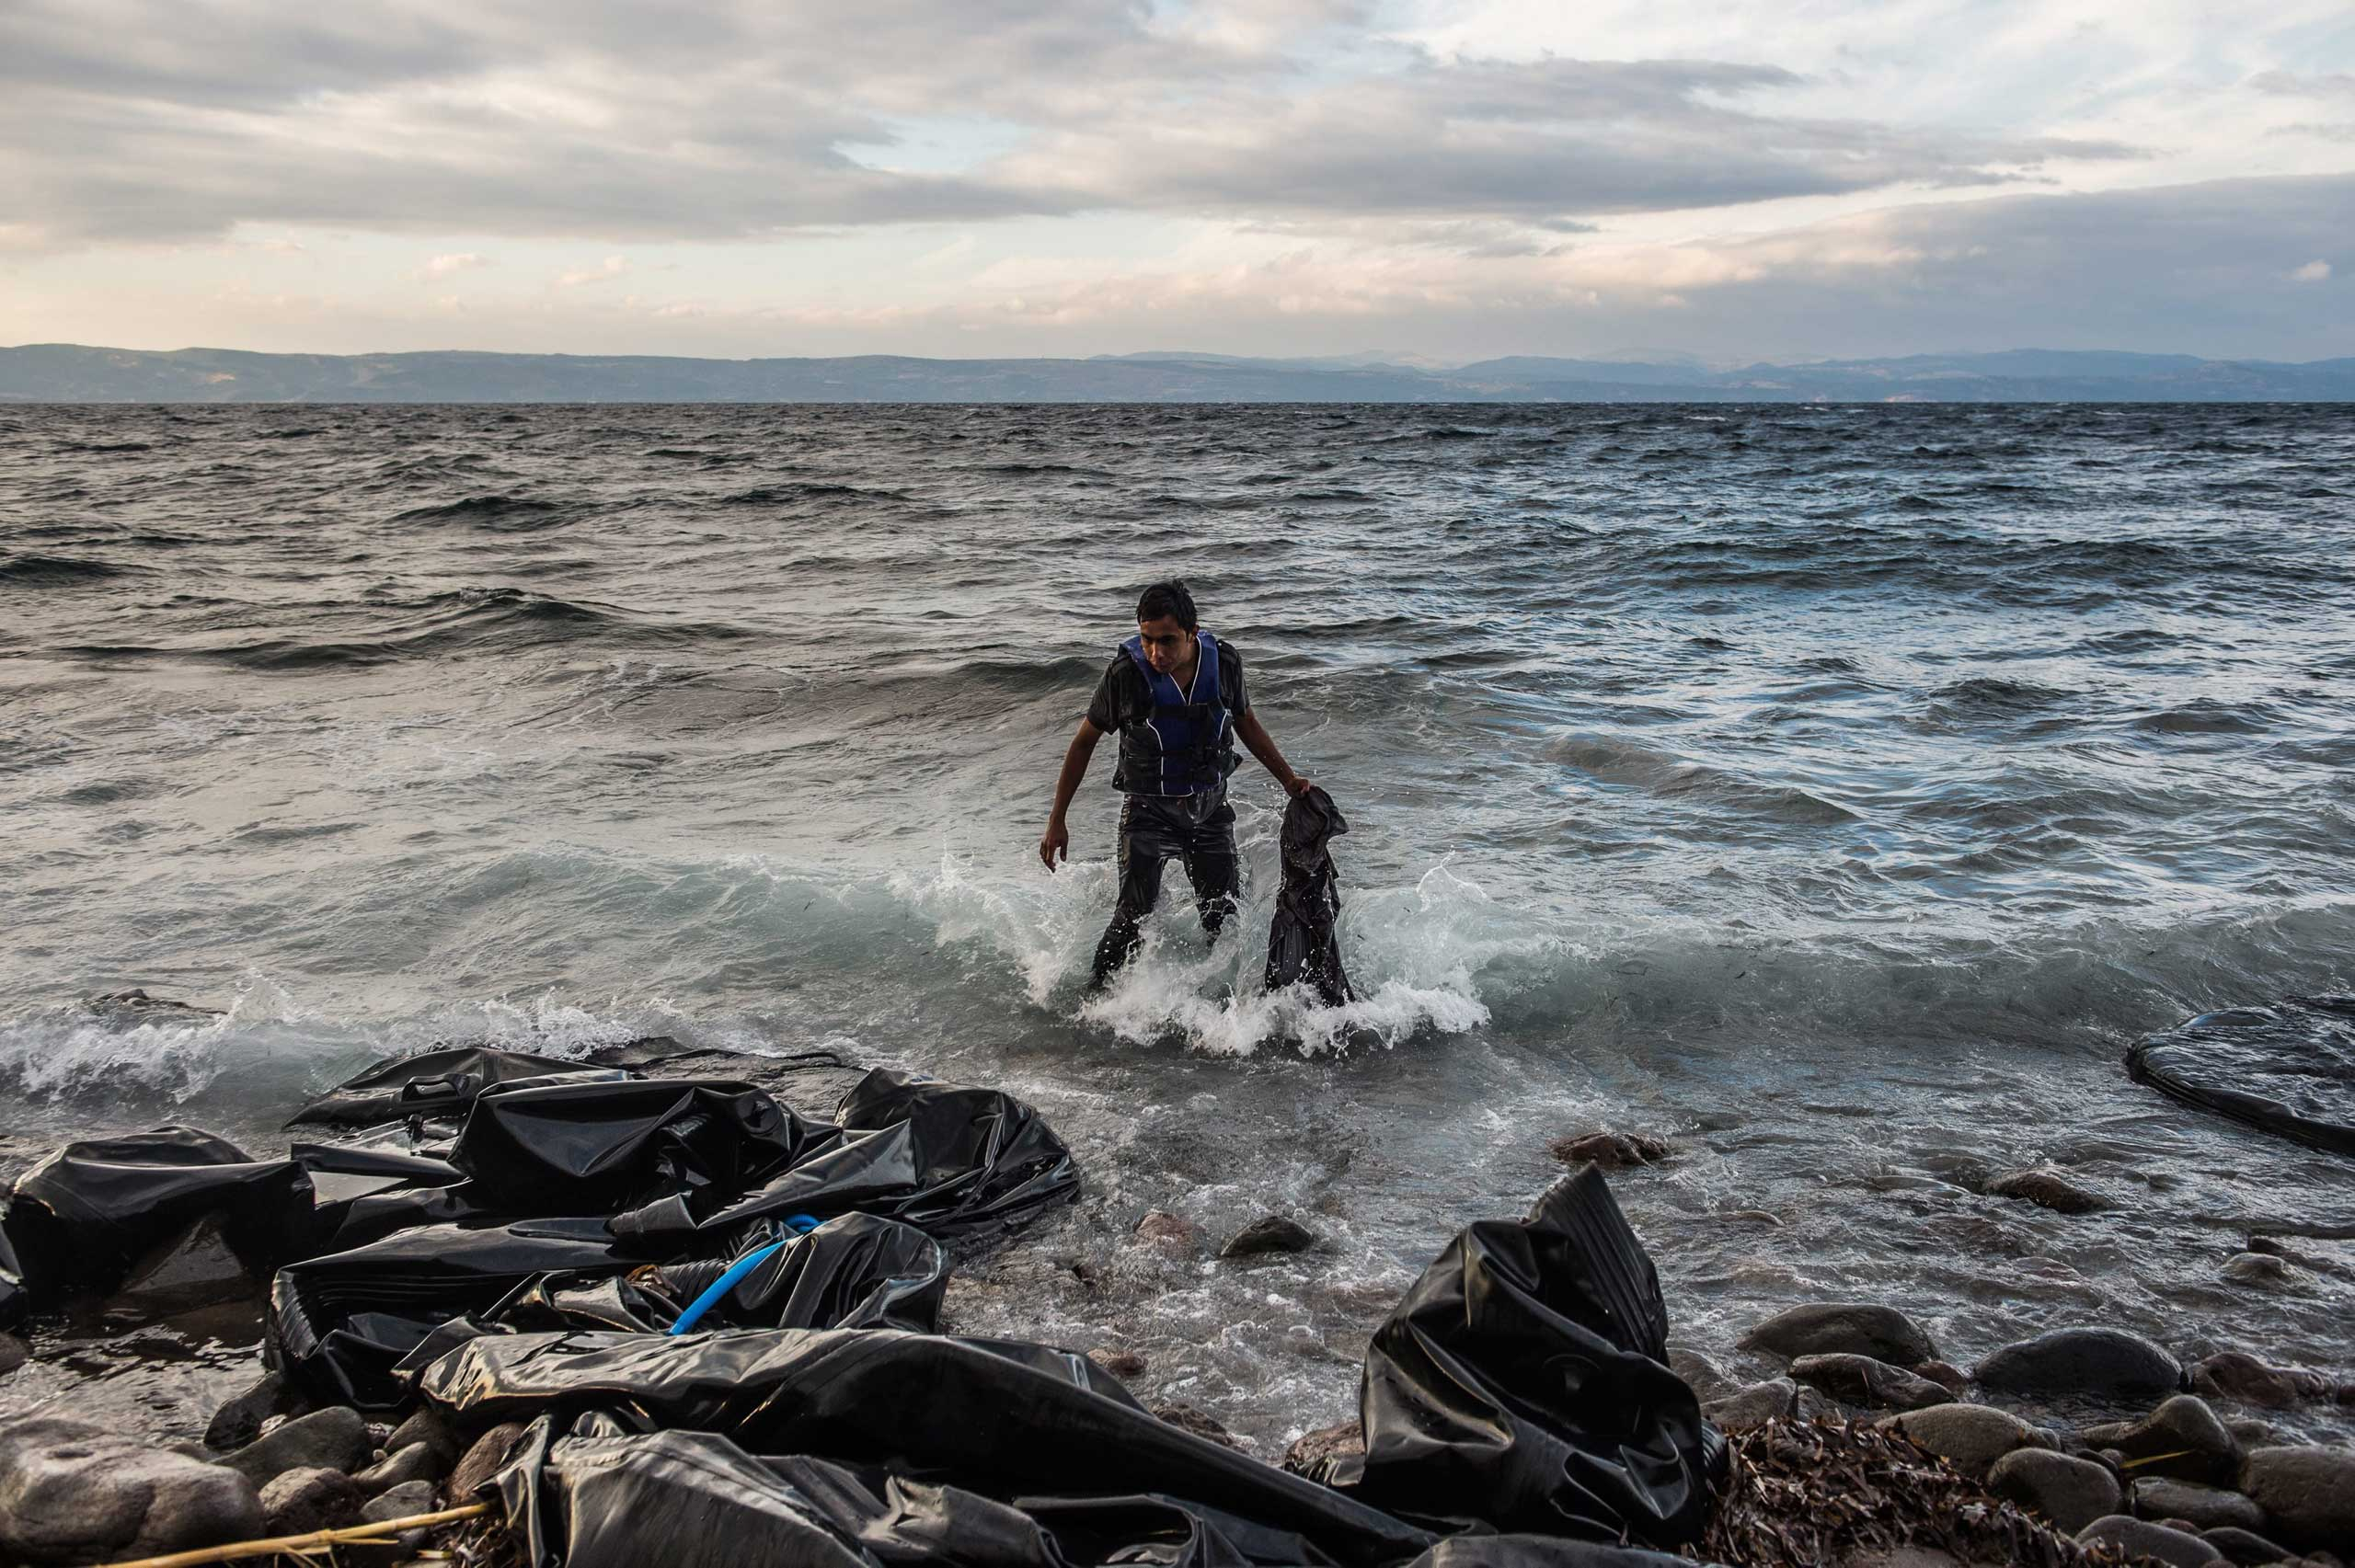 An Afghan wades to the shore after arriving in an overloaded rubber dinghy on the coast near Skala Sikaminias, Lesbos island, Greece, Oct. 1, 2015.